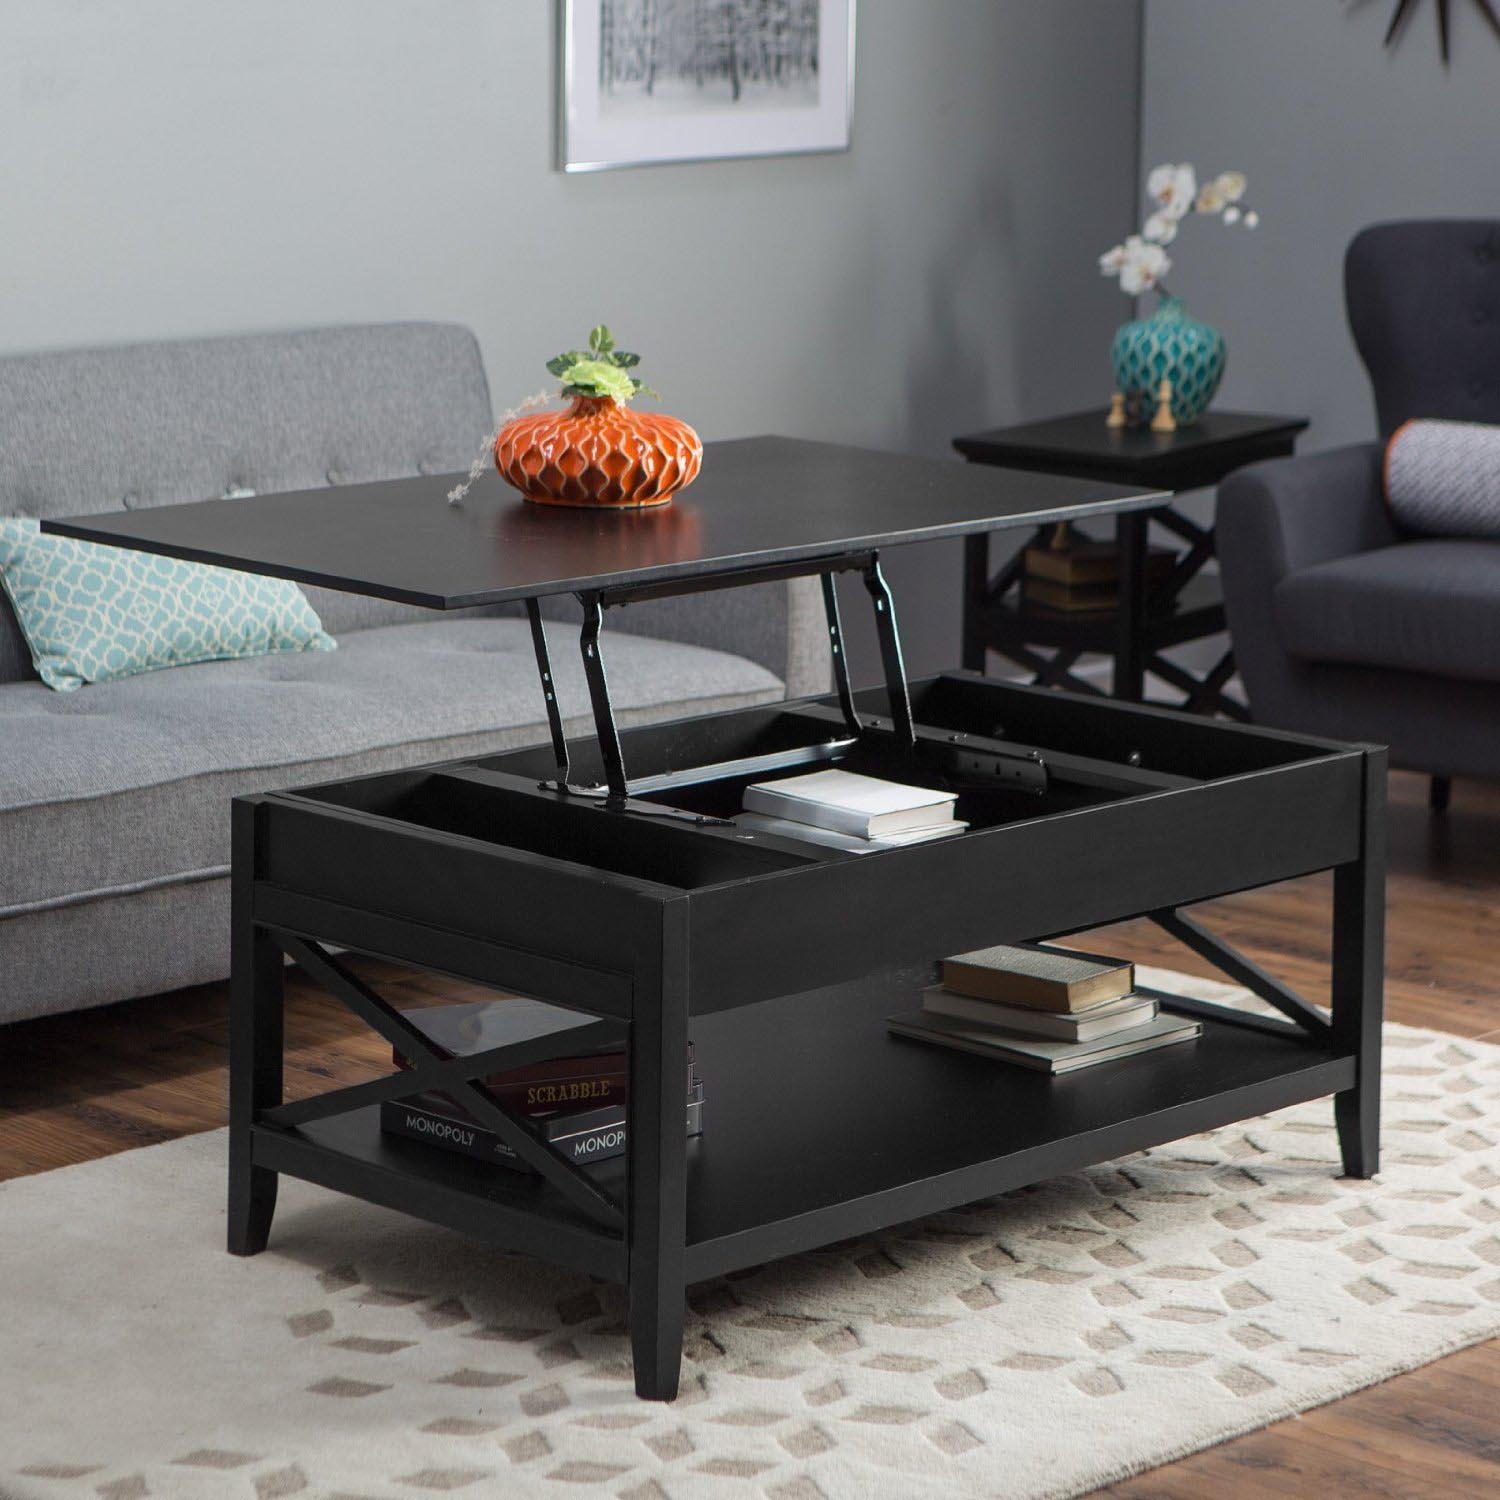 Adjustable top coffee table coffee table design ideas for Adjustable coffee table